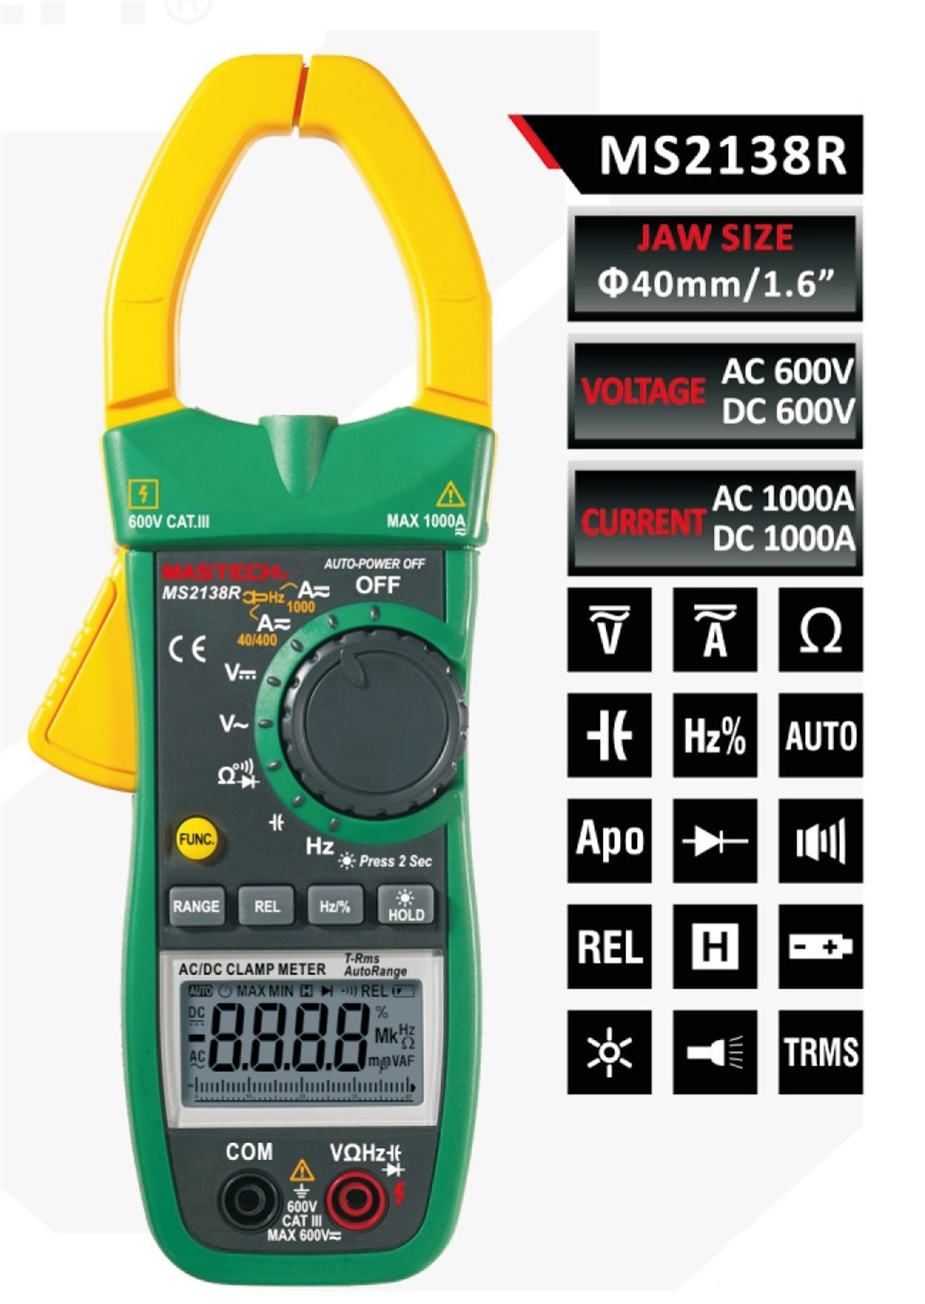 Selling MASTECH MS2138R 4000 Counts Digital AC DC Clamp Meter Multimeter Voltage Current Capacitance Resistance Tester mastech ms2001c digital clamp meter multimeter ac dc voltage current diode resistance measurement